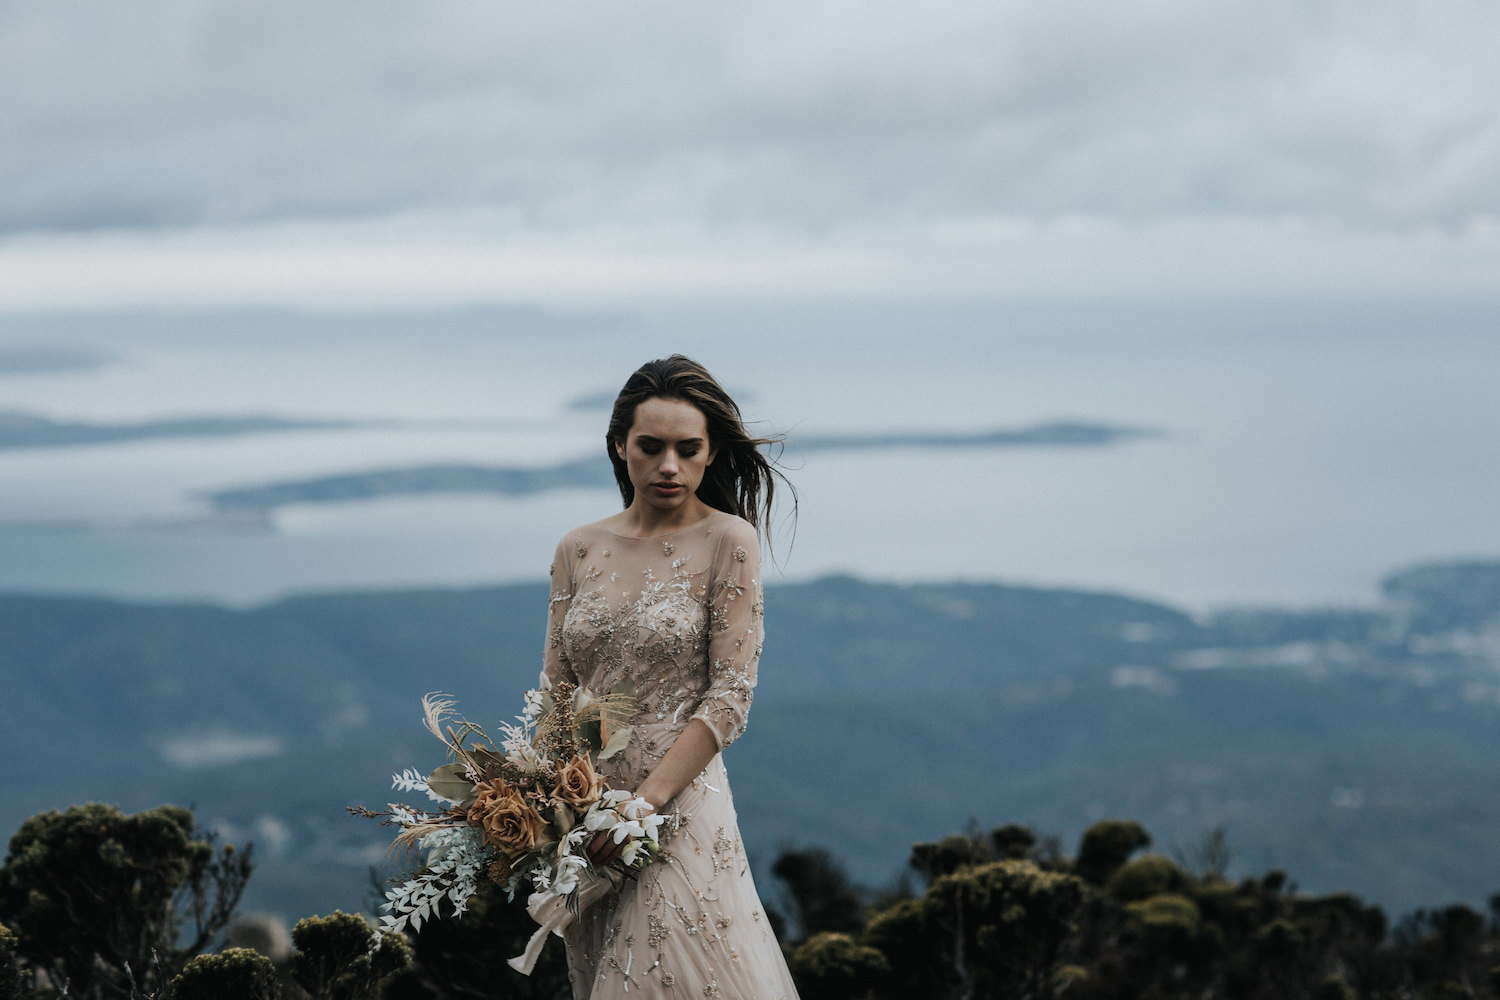 Bride / wedding photography Tasmania